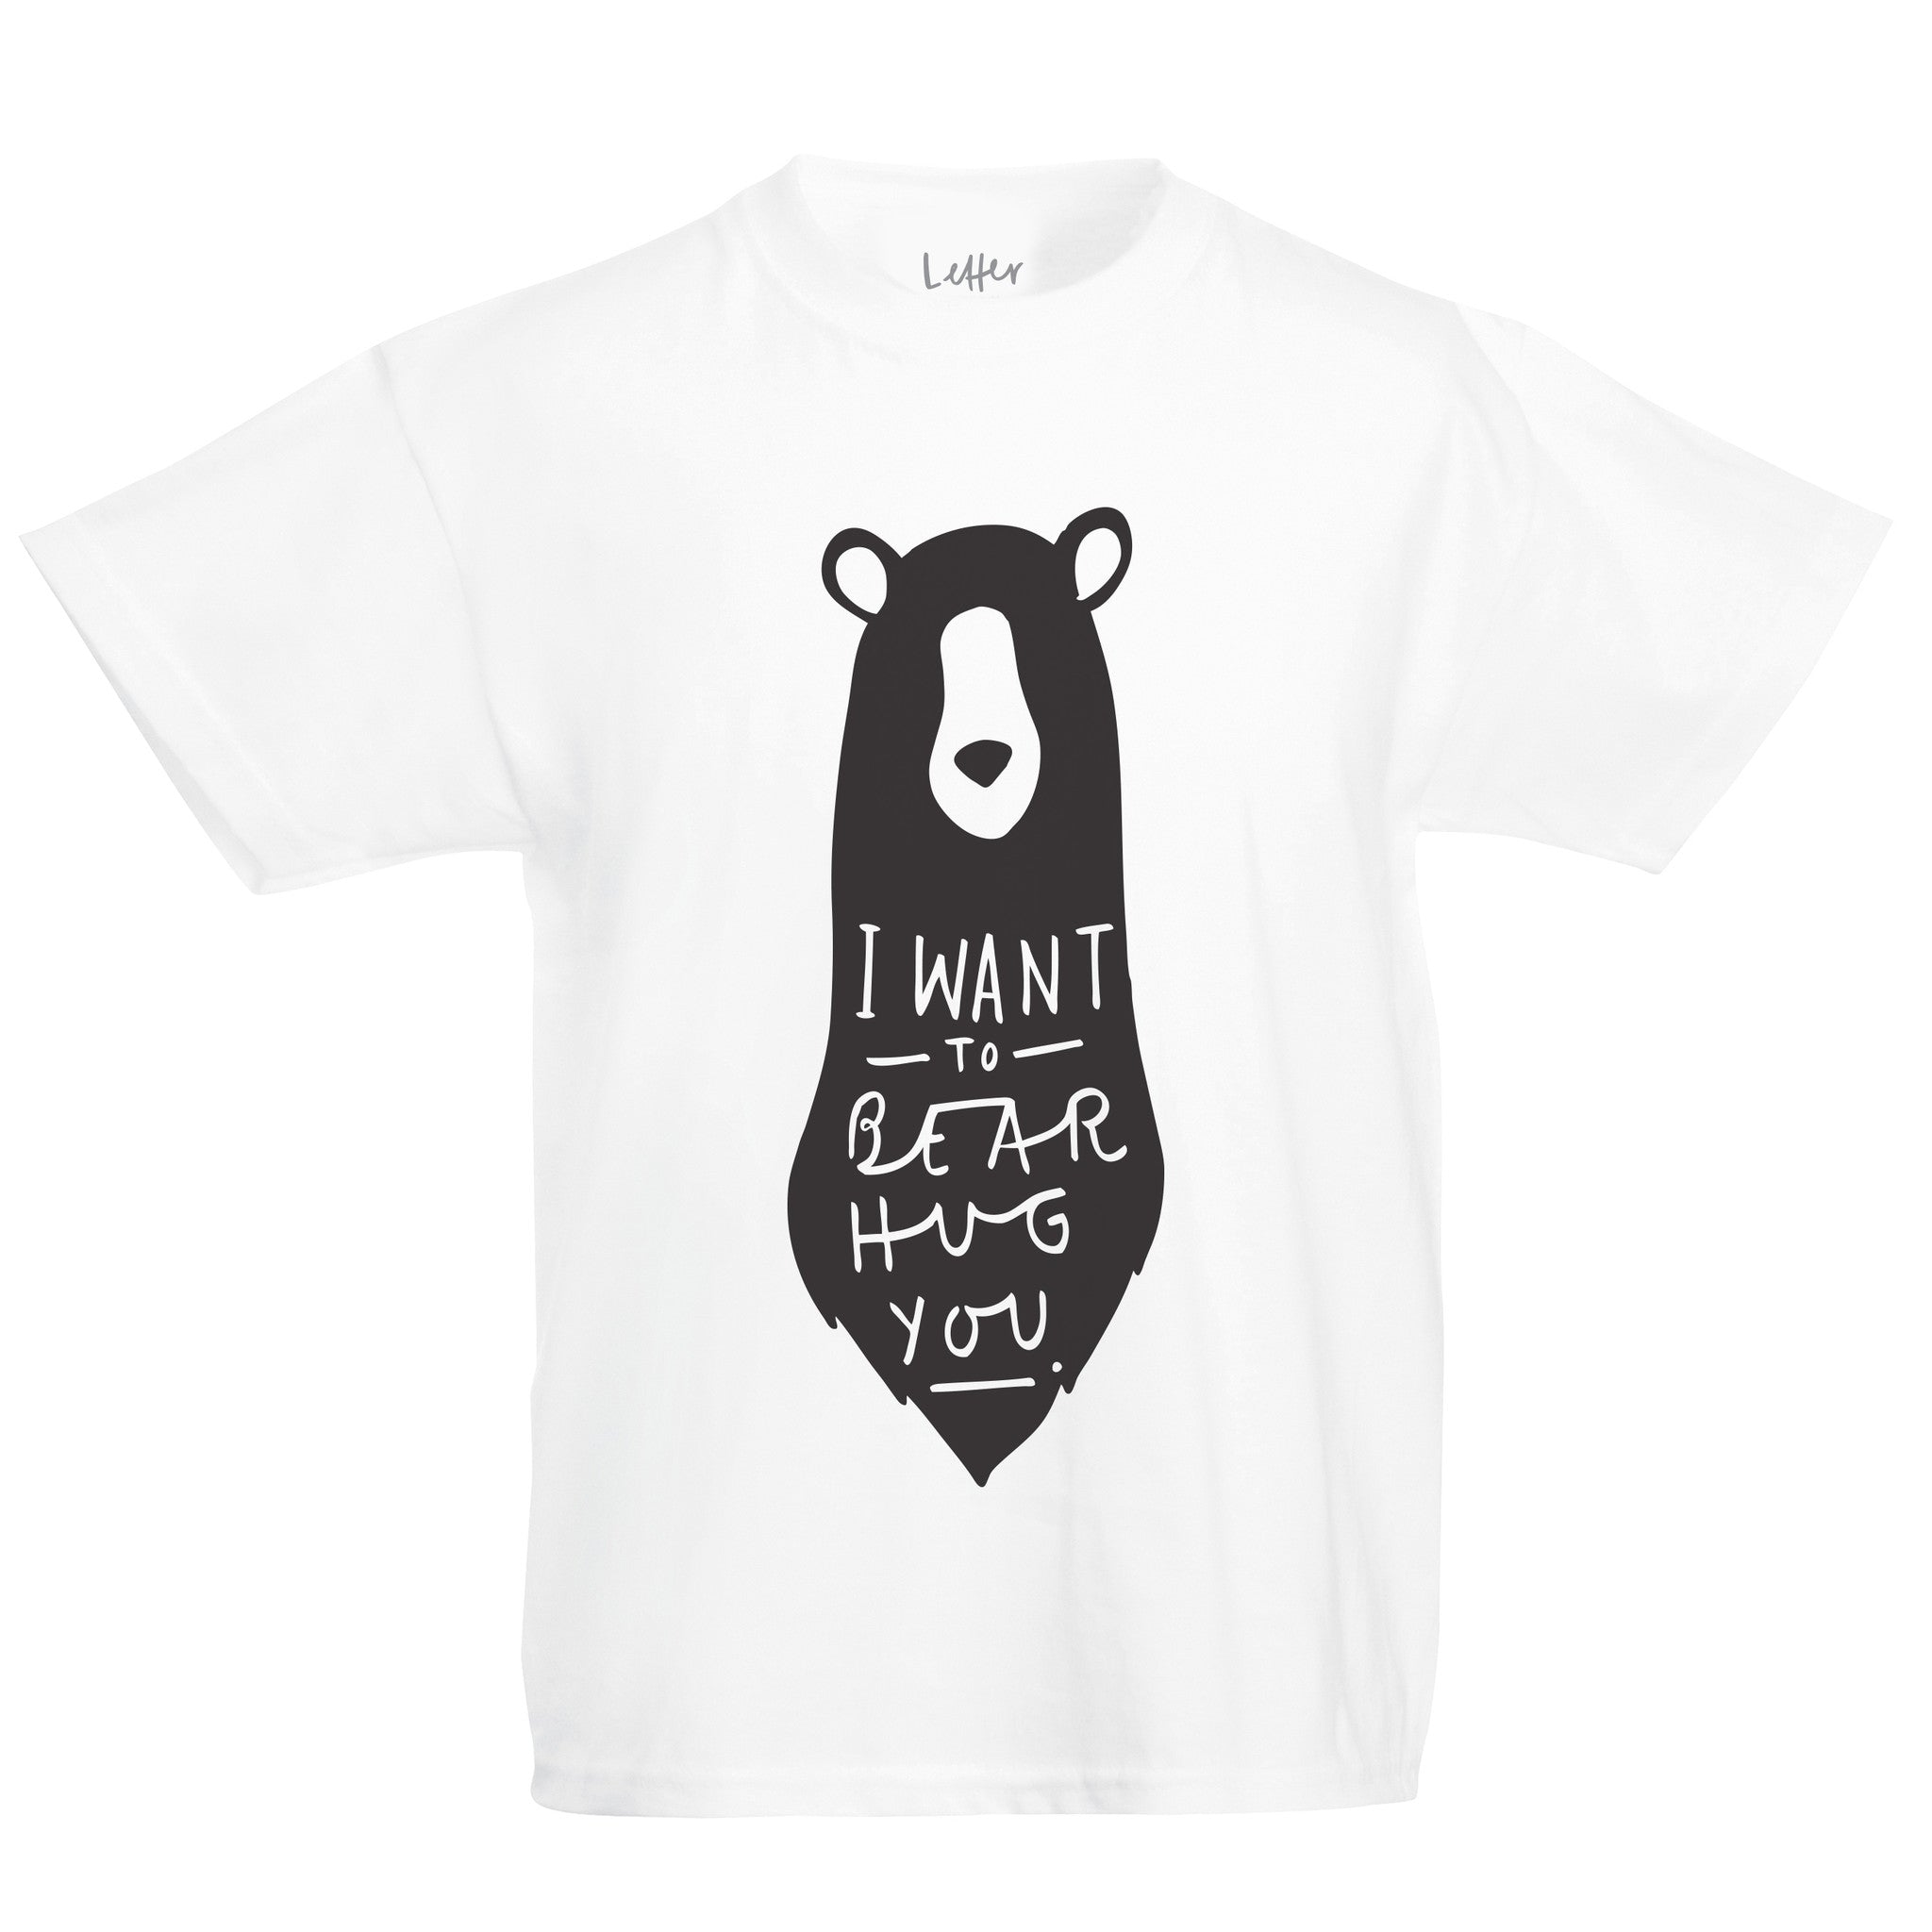 i want to bear hug you t shirt